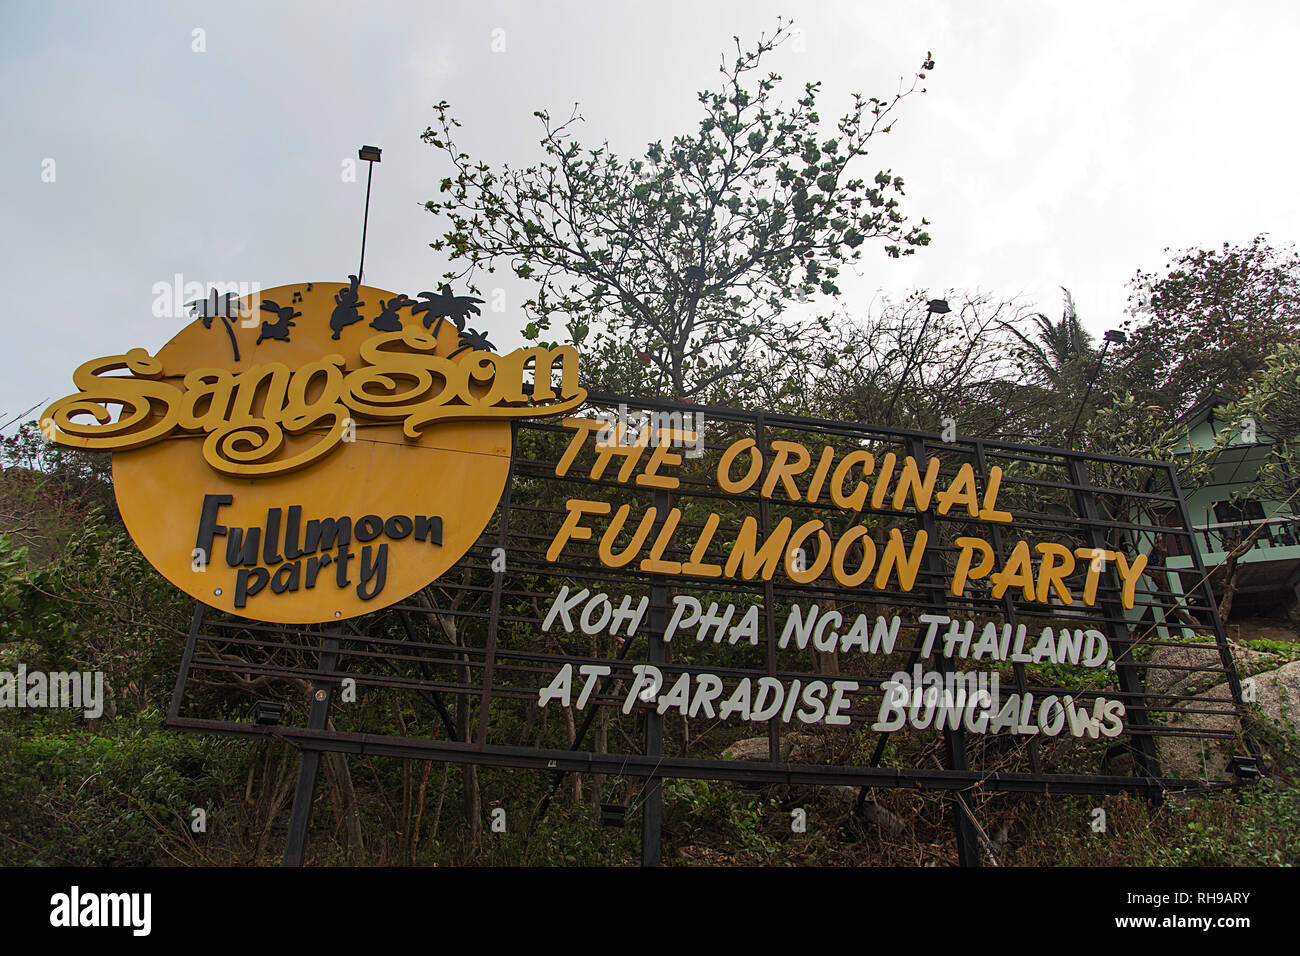 KOH PHANGAN - FEBRUARY 7, 2016: Sign at Koh Phangan island in Thailand. Island is part of the Samui Archipelago and is famous for Full Moon Party. - Stock Image